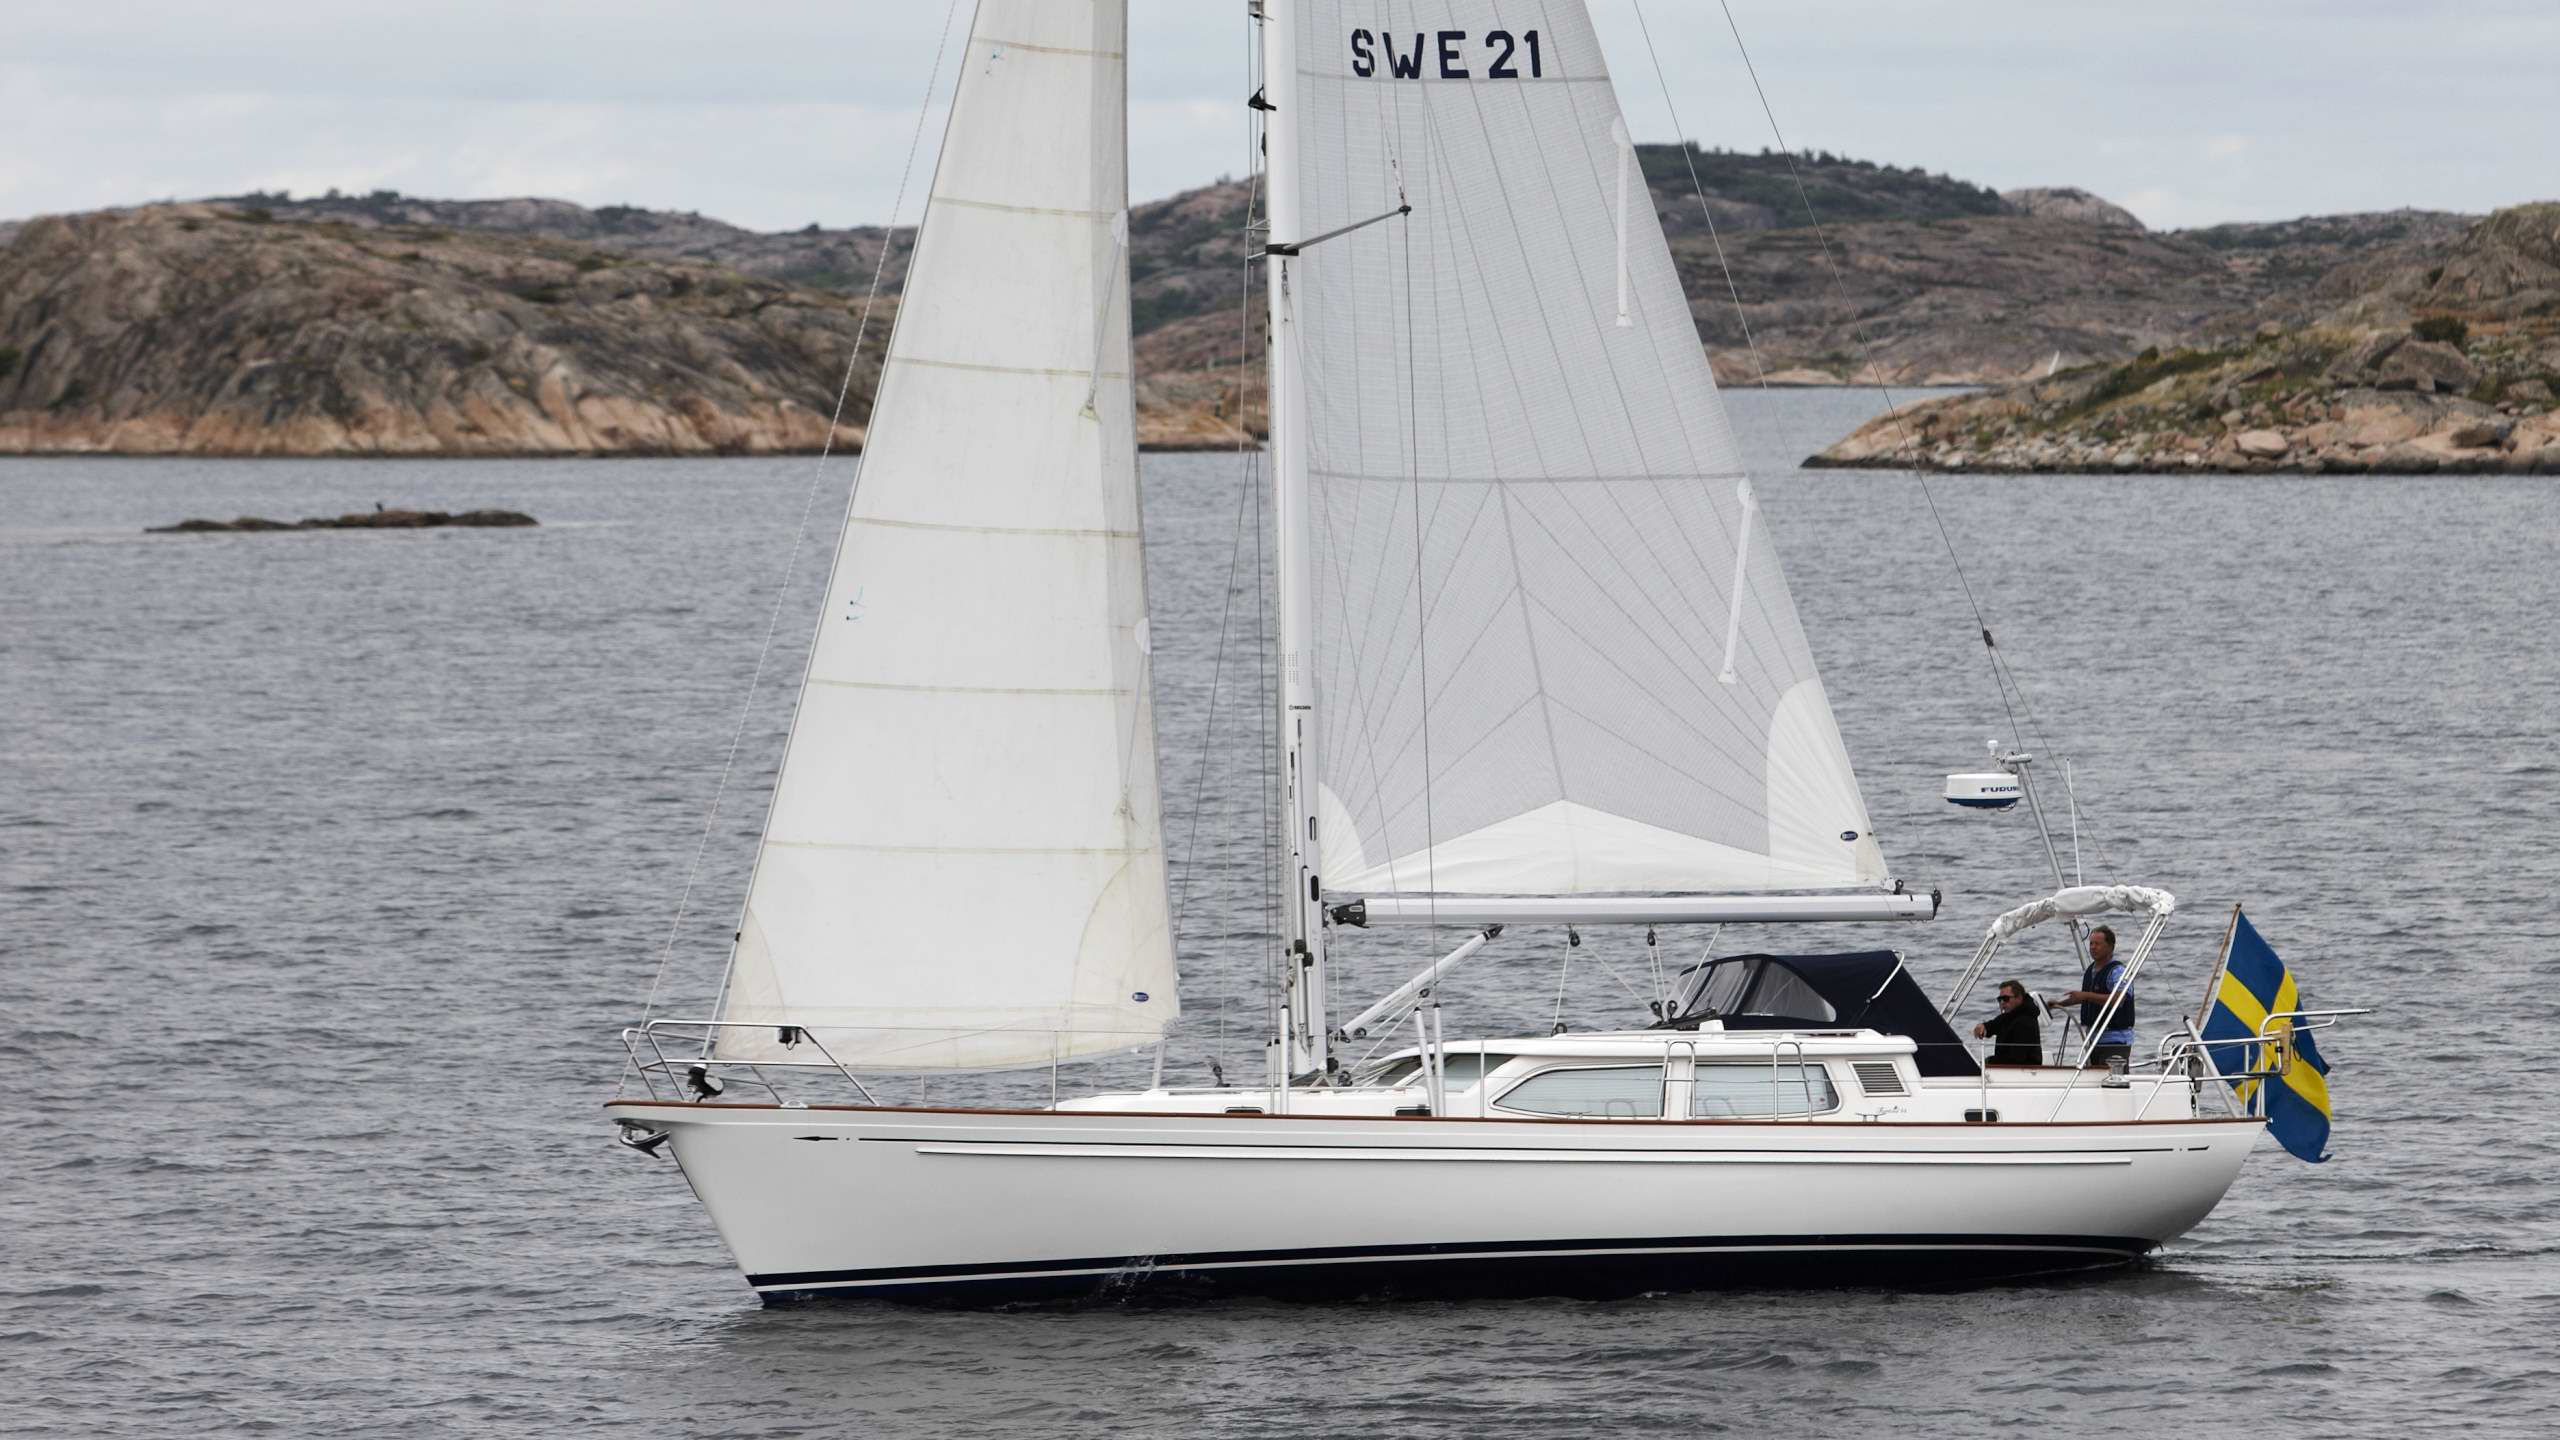 The most recent Fantasi 44, finished in 2012 by Fribergs Båtbyggeri in collaboration with Fantasi Yachts